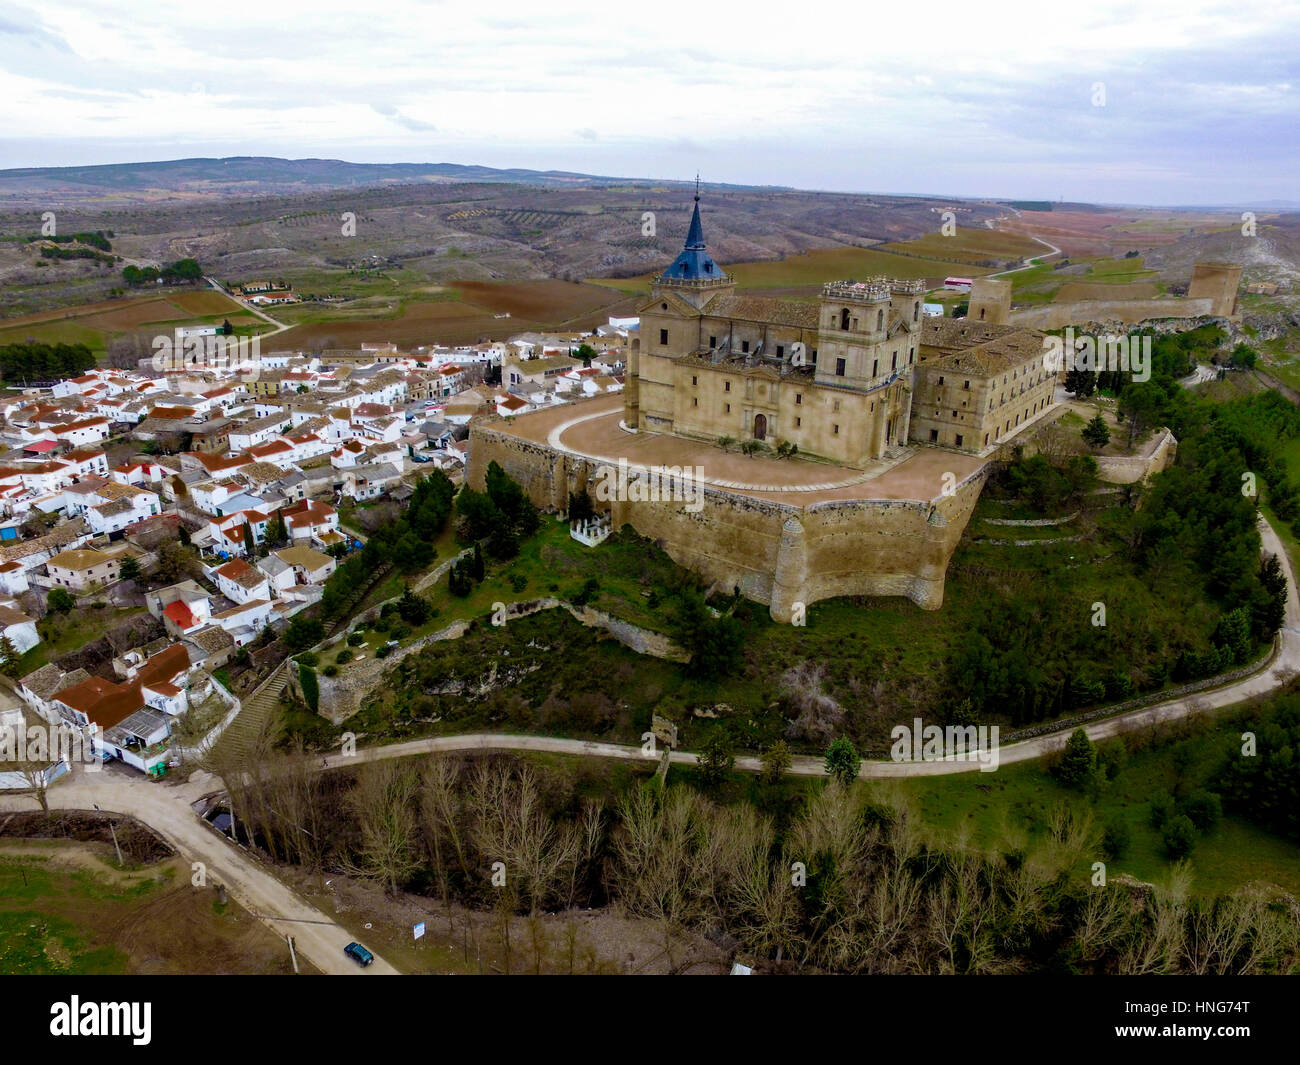 Drone Shot of monastery in Spain (Uclés) - Stock Image